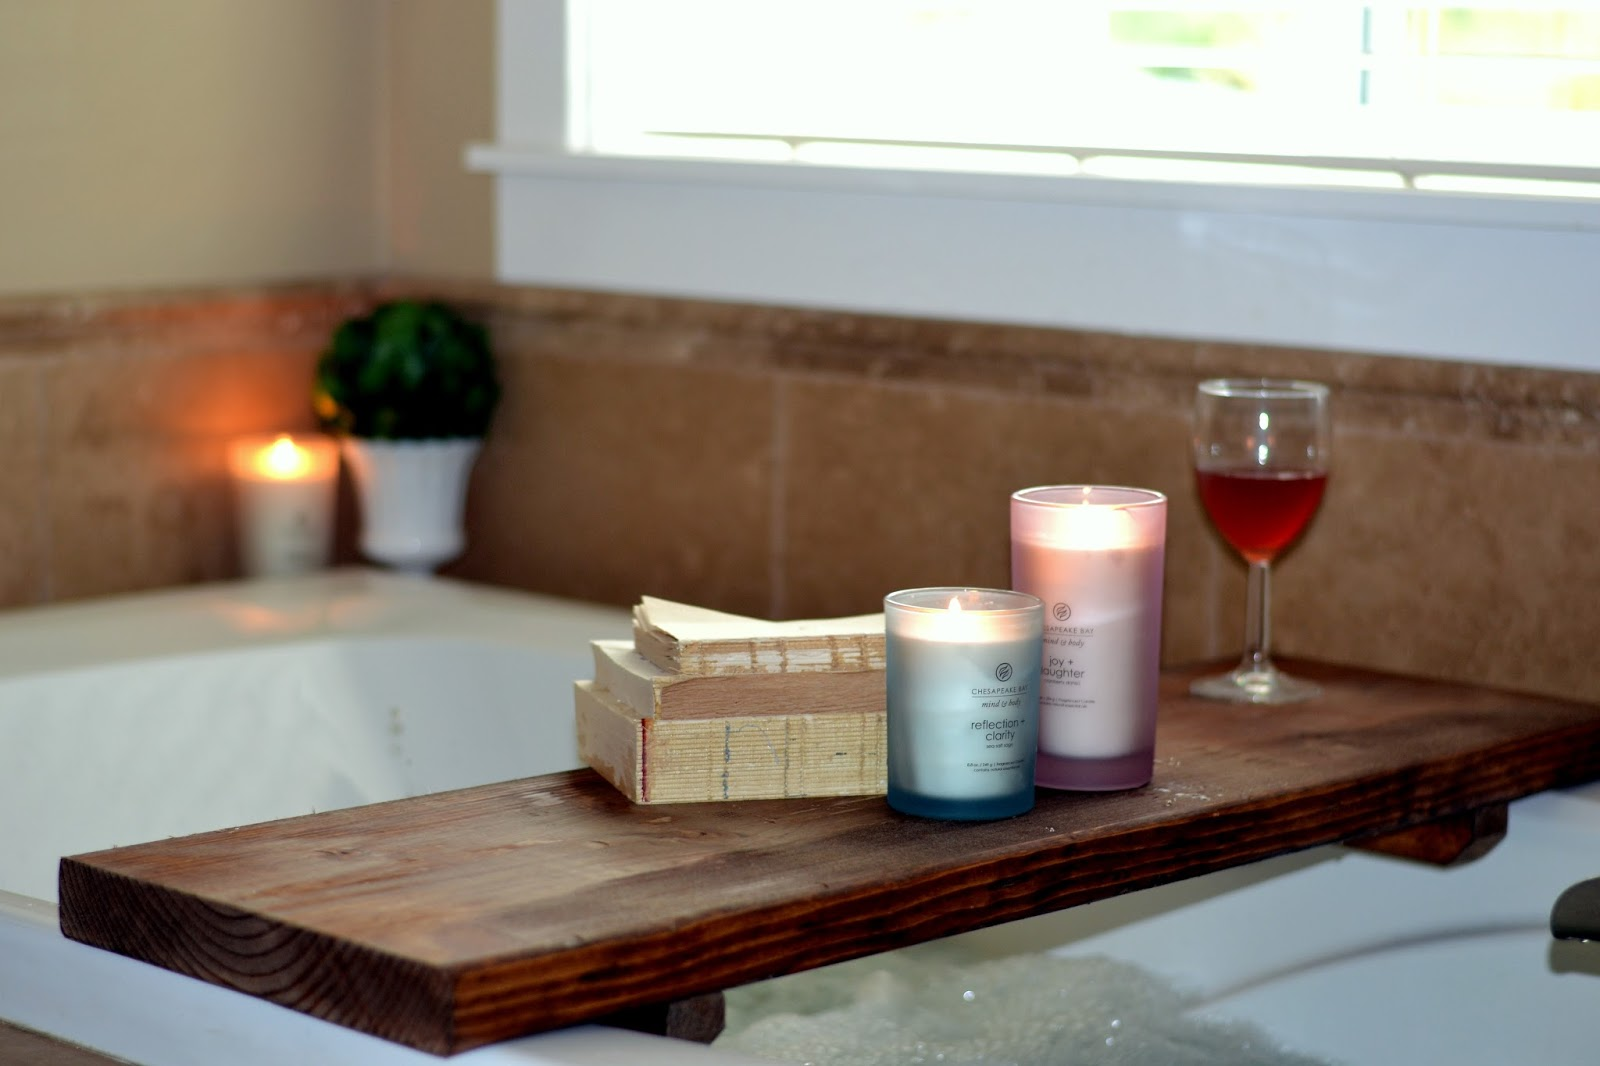 DIY Bathtub Spa Shelf - Rachel Teodoro